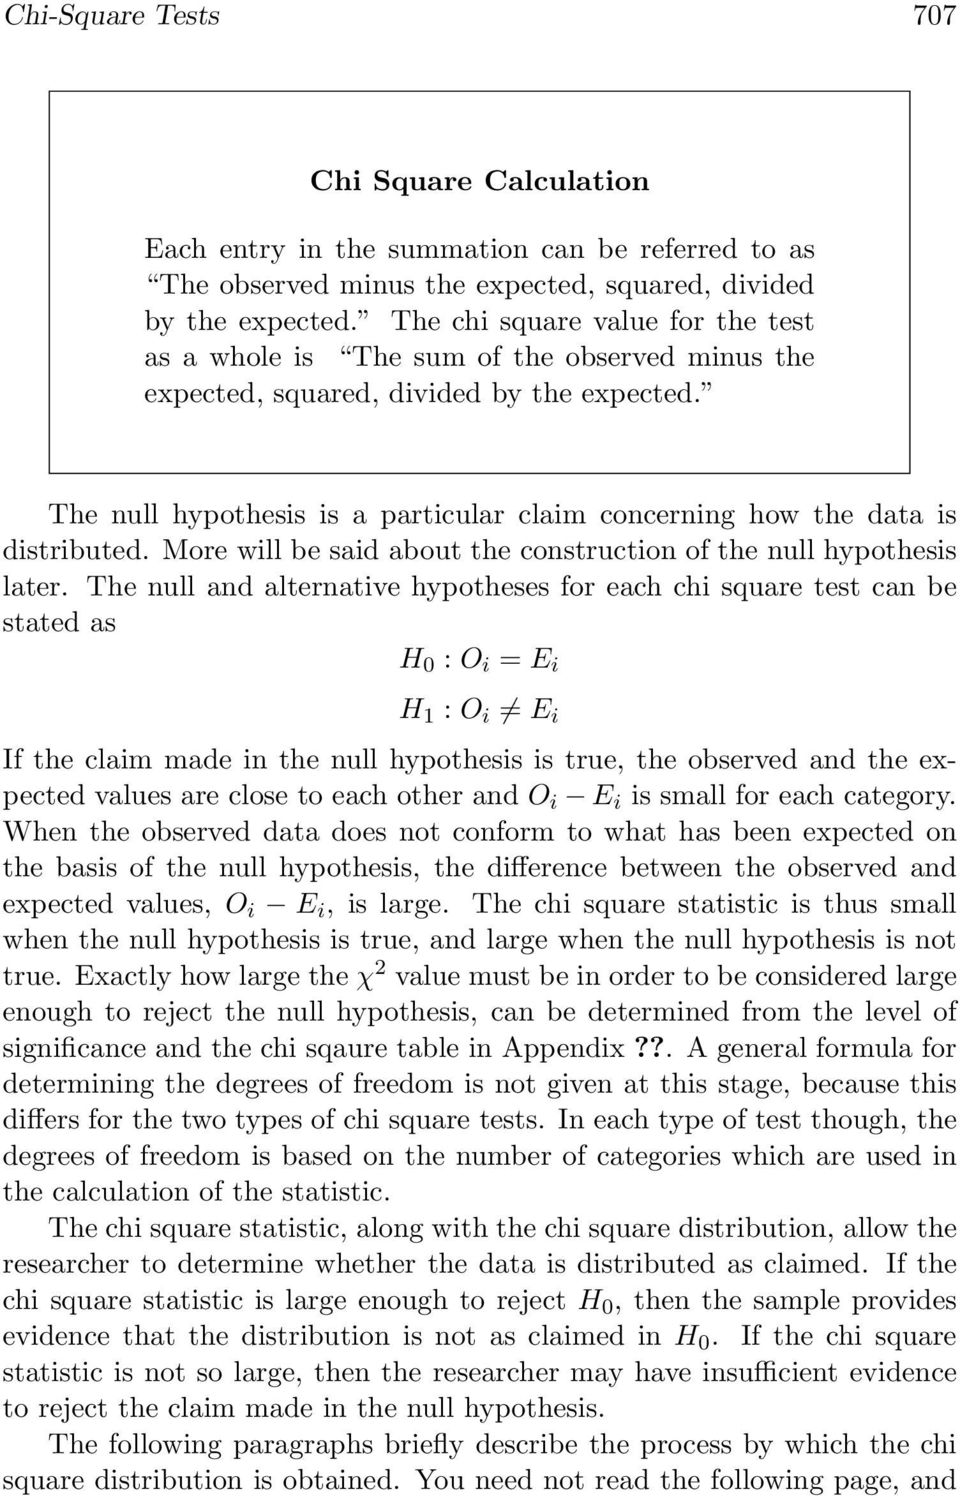 The null hypothesis is a particular claim concerning how the data is distributed. More will be said about the construction of the null hypothesis later.